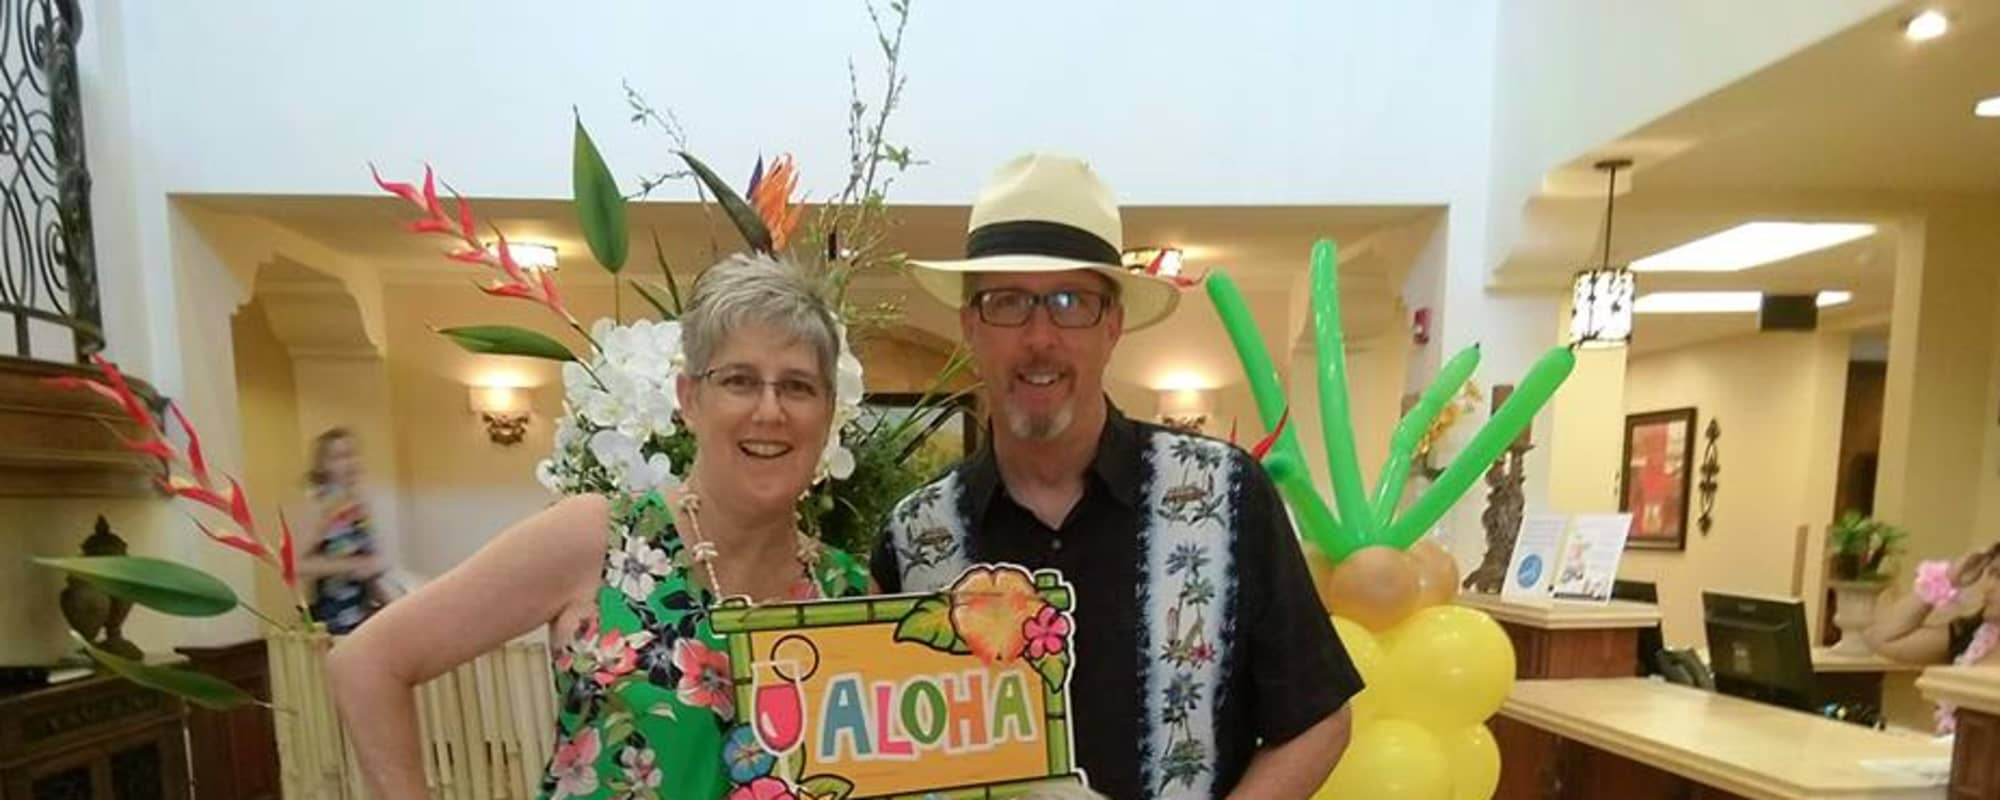 Hawaiian themed senior party at Estancia Del Sol in Corona, California